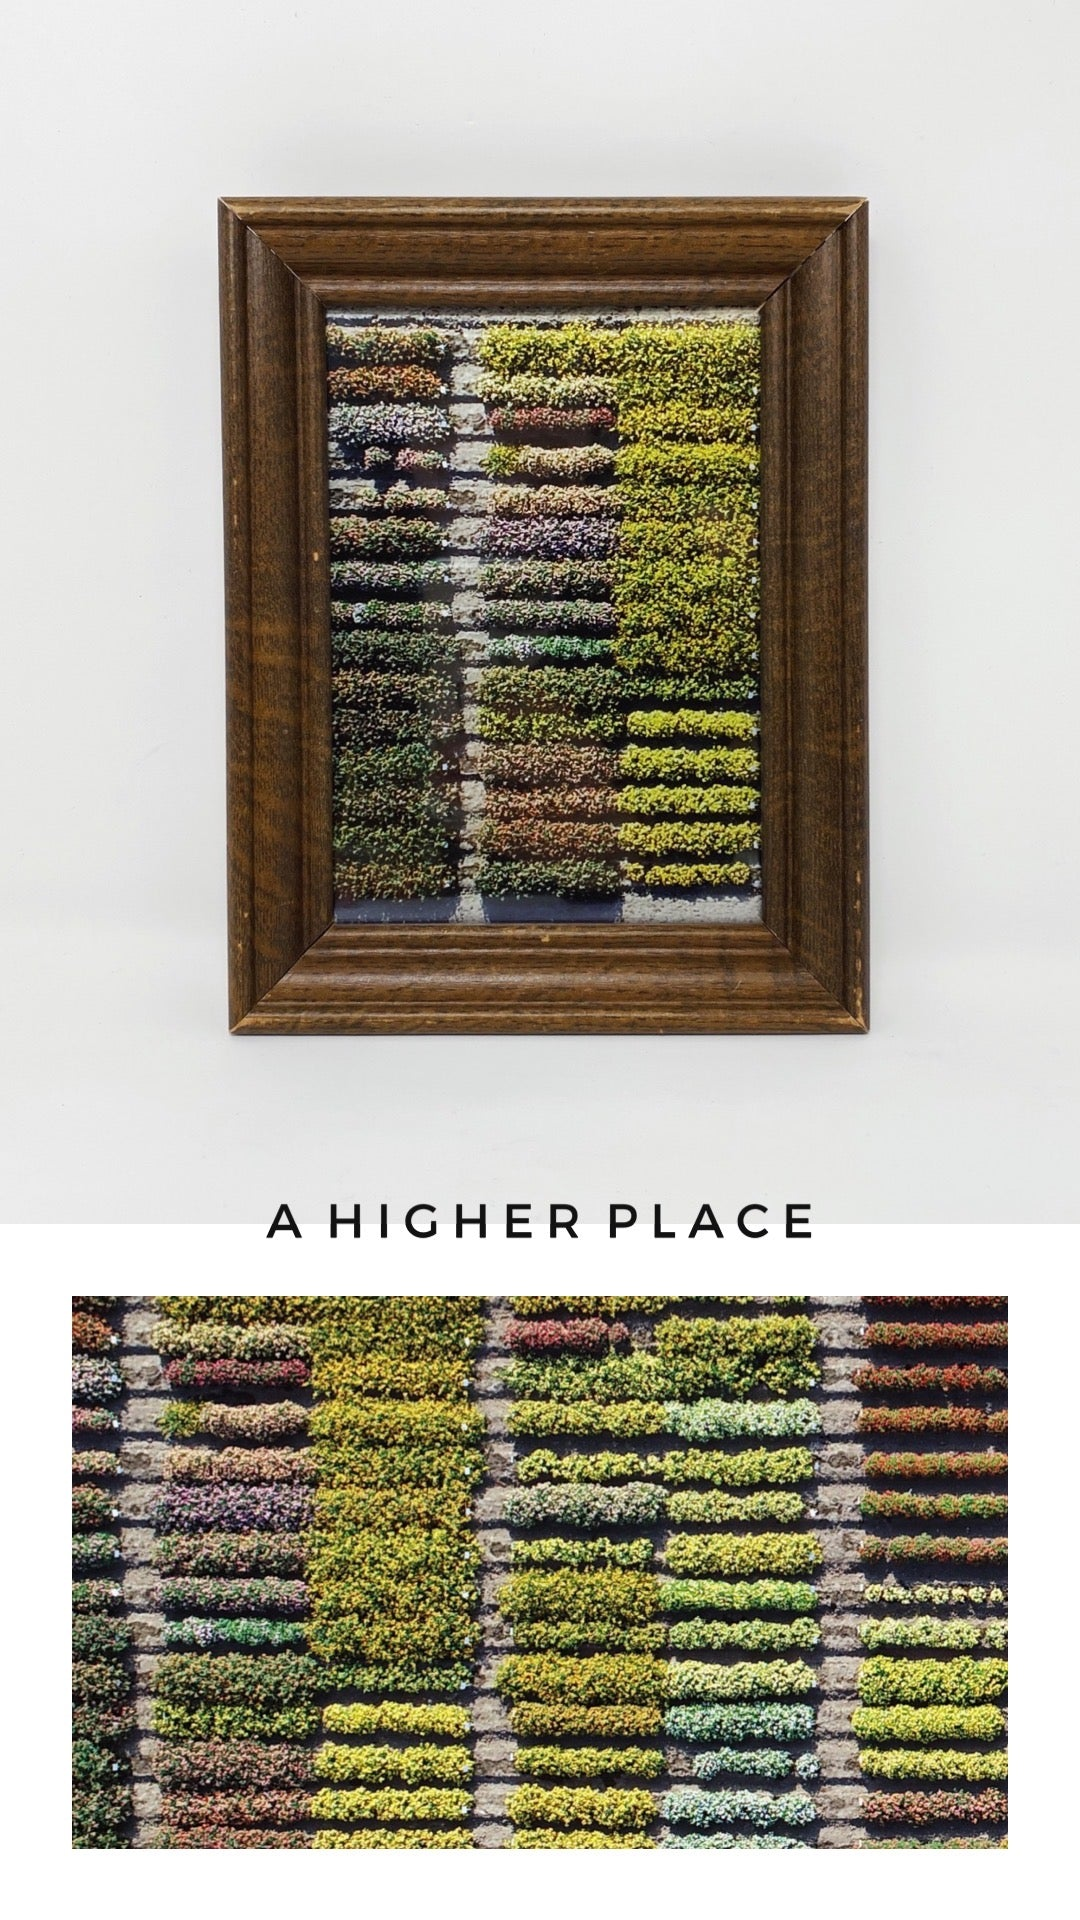 FRAMED 'A HIGHER PLACE' PRINT